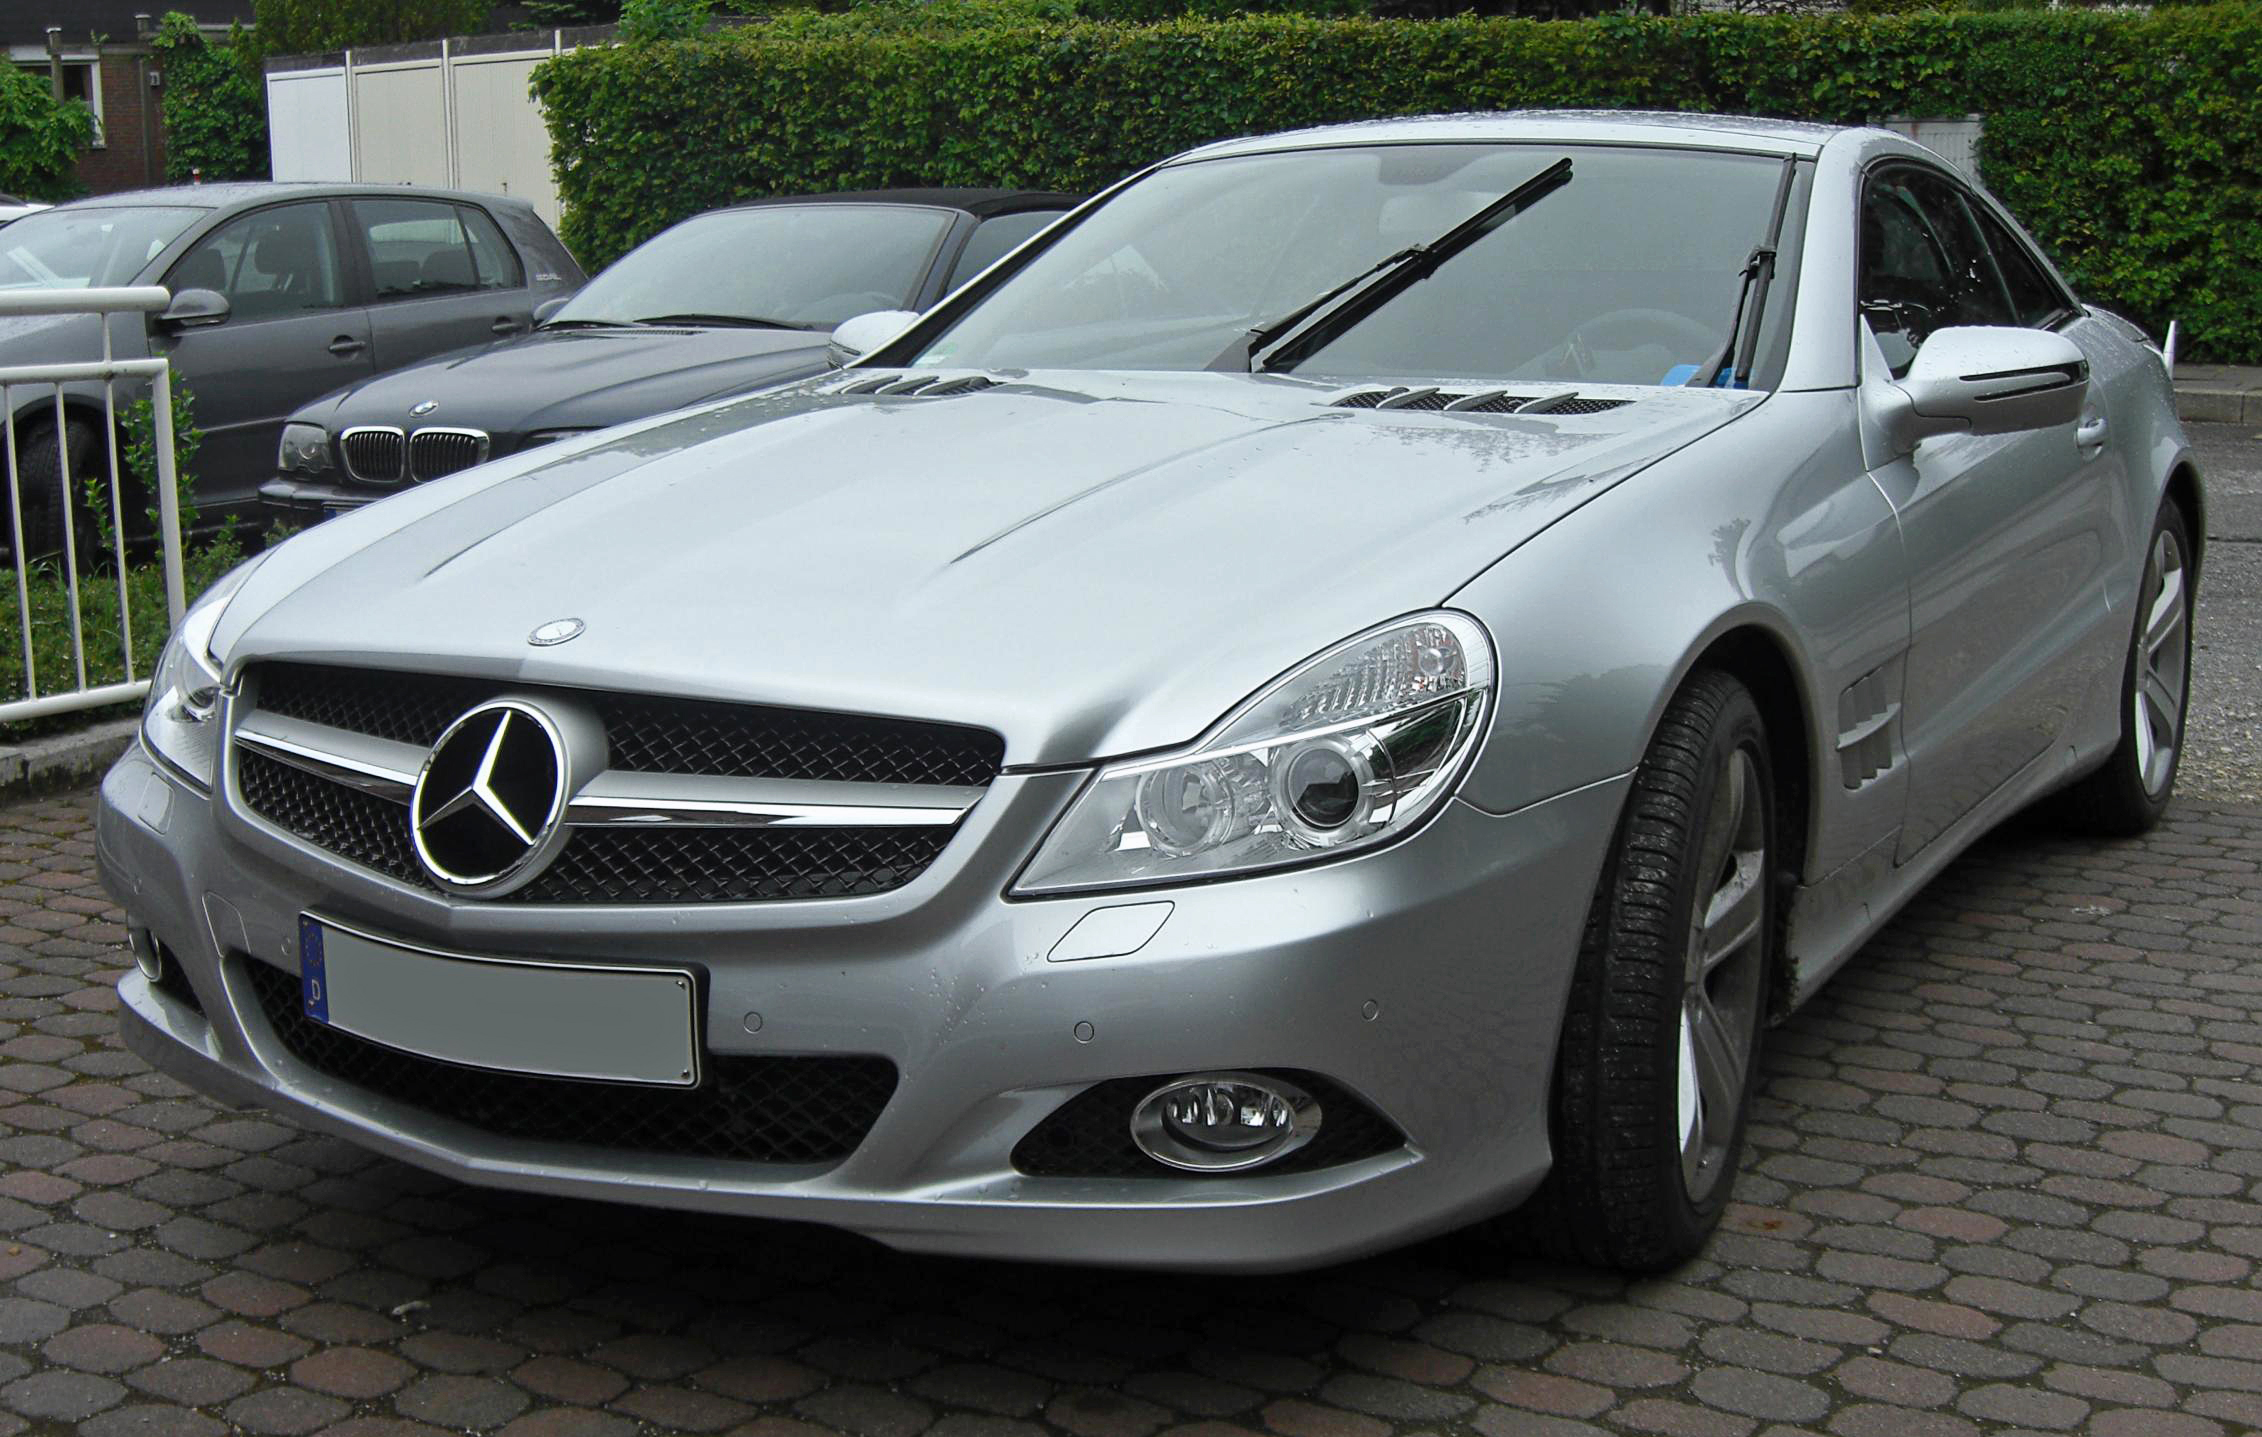 file mercedes sl 2 facelift wikimedia commons. Black Bedroom Furniture Sets. Home Design Ideas